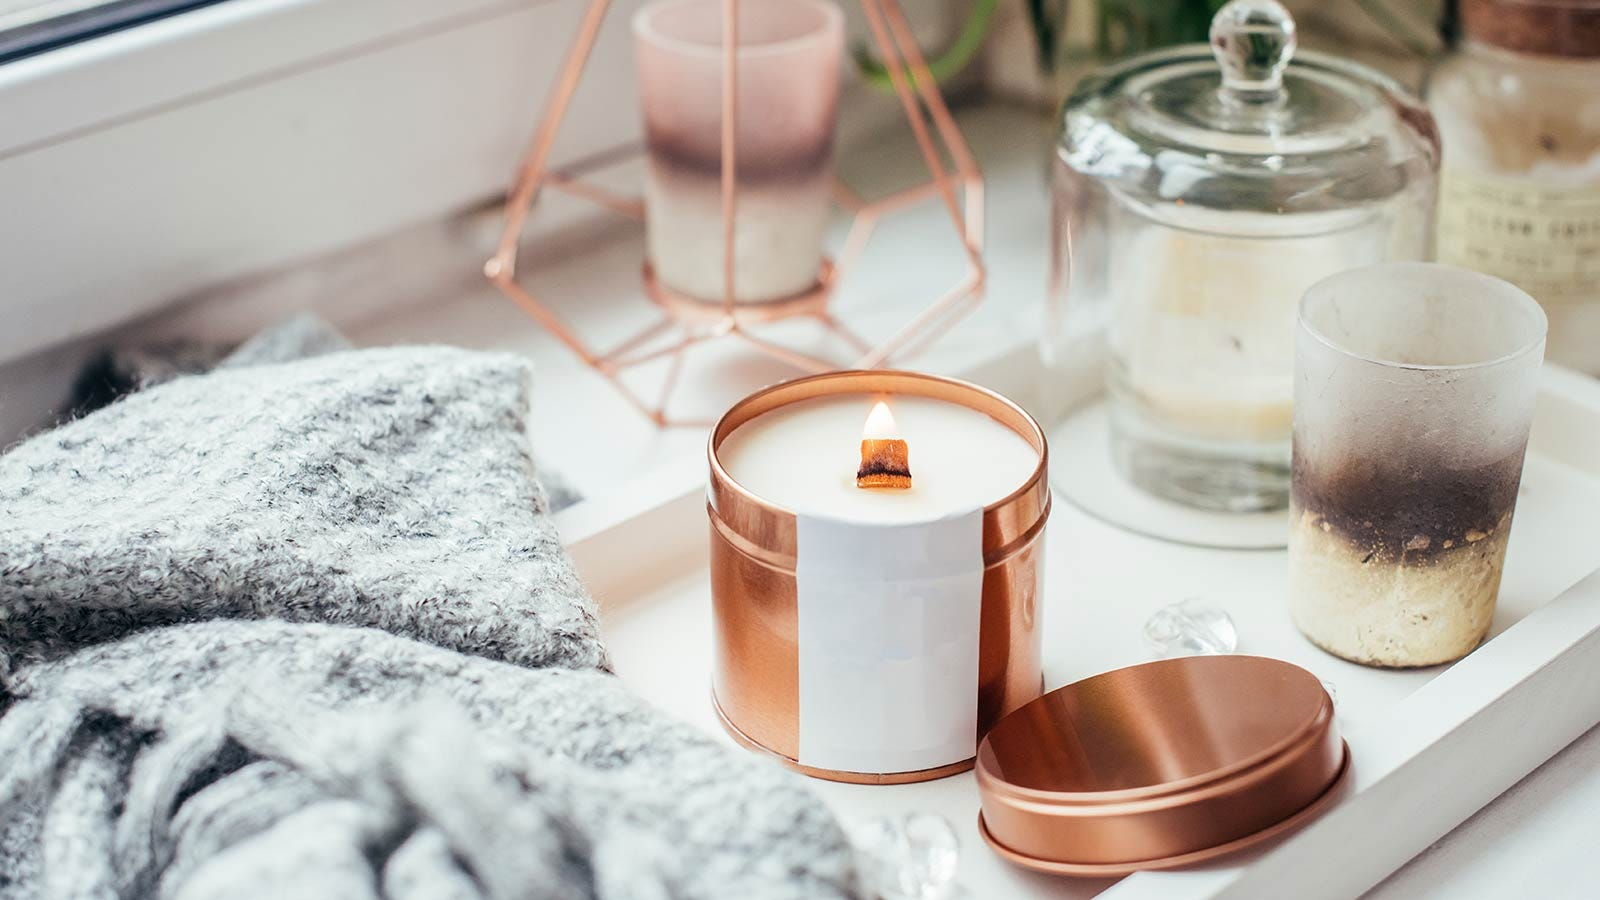 A candle on a tray beside a soft blanket and decorative items.